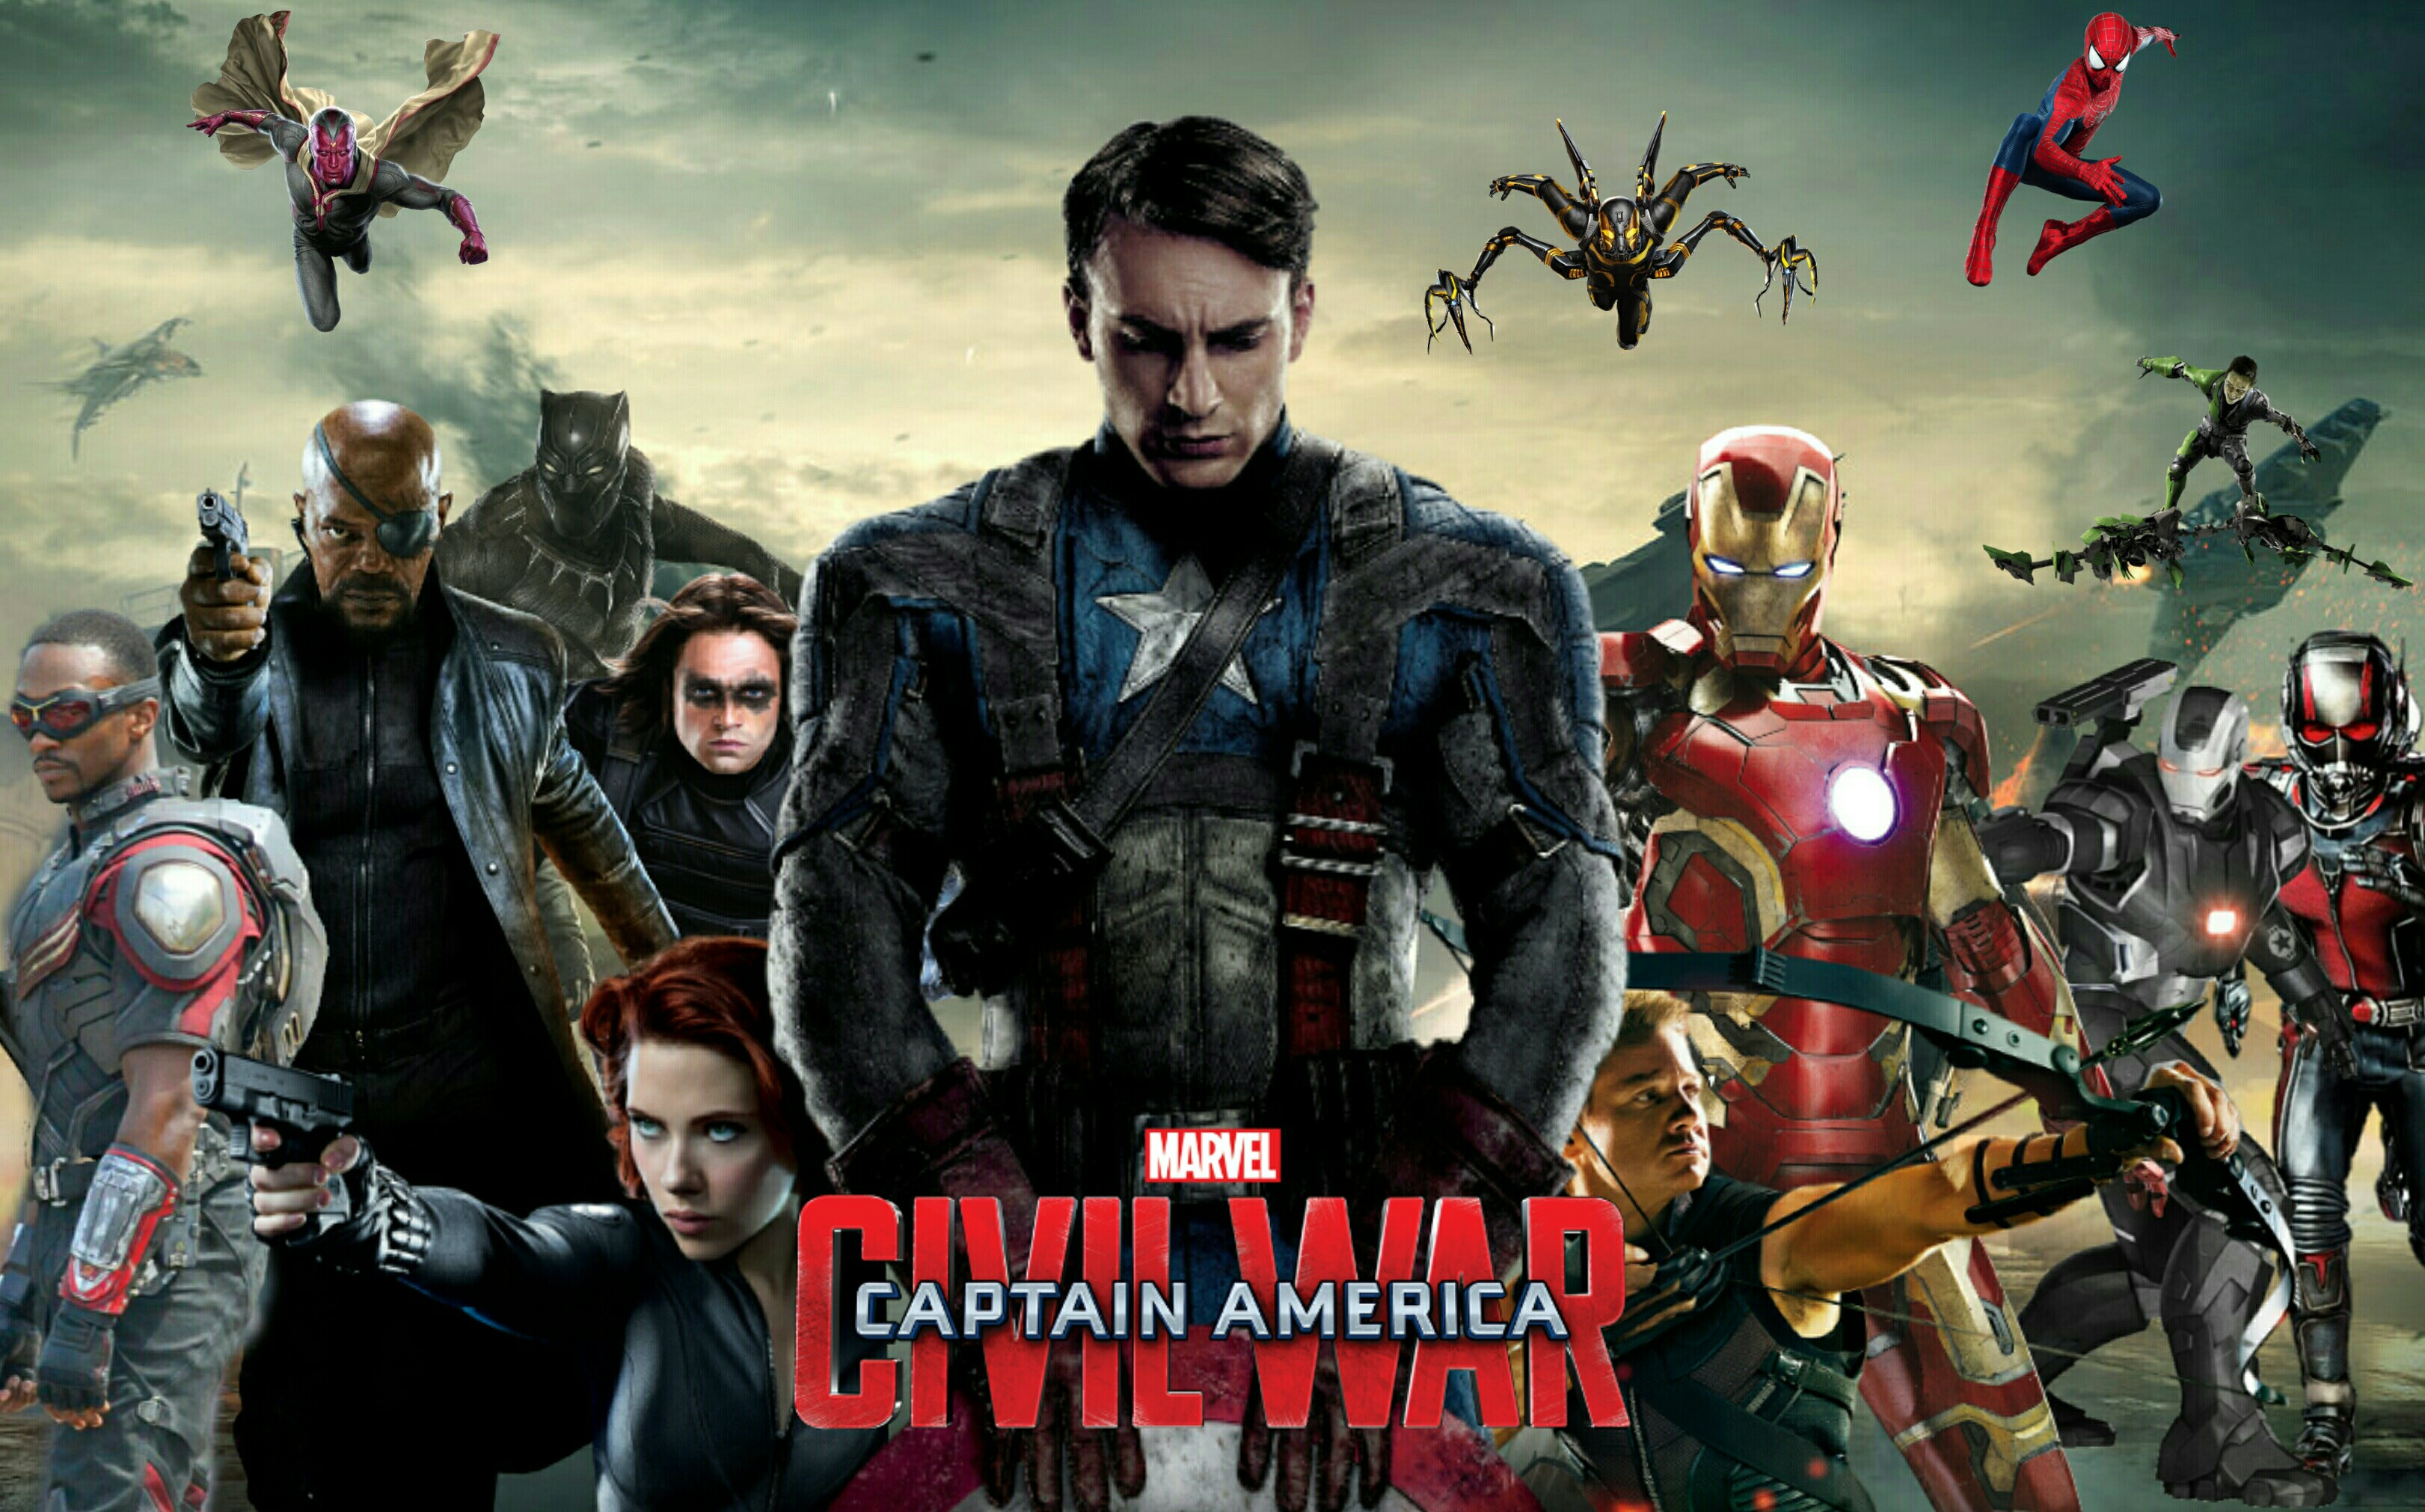 Captain America Civil War Wallpaper Movie Poster by MrVideo VidMan 3242x2022